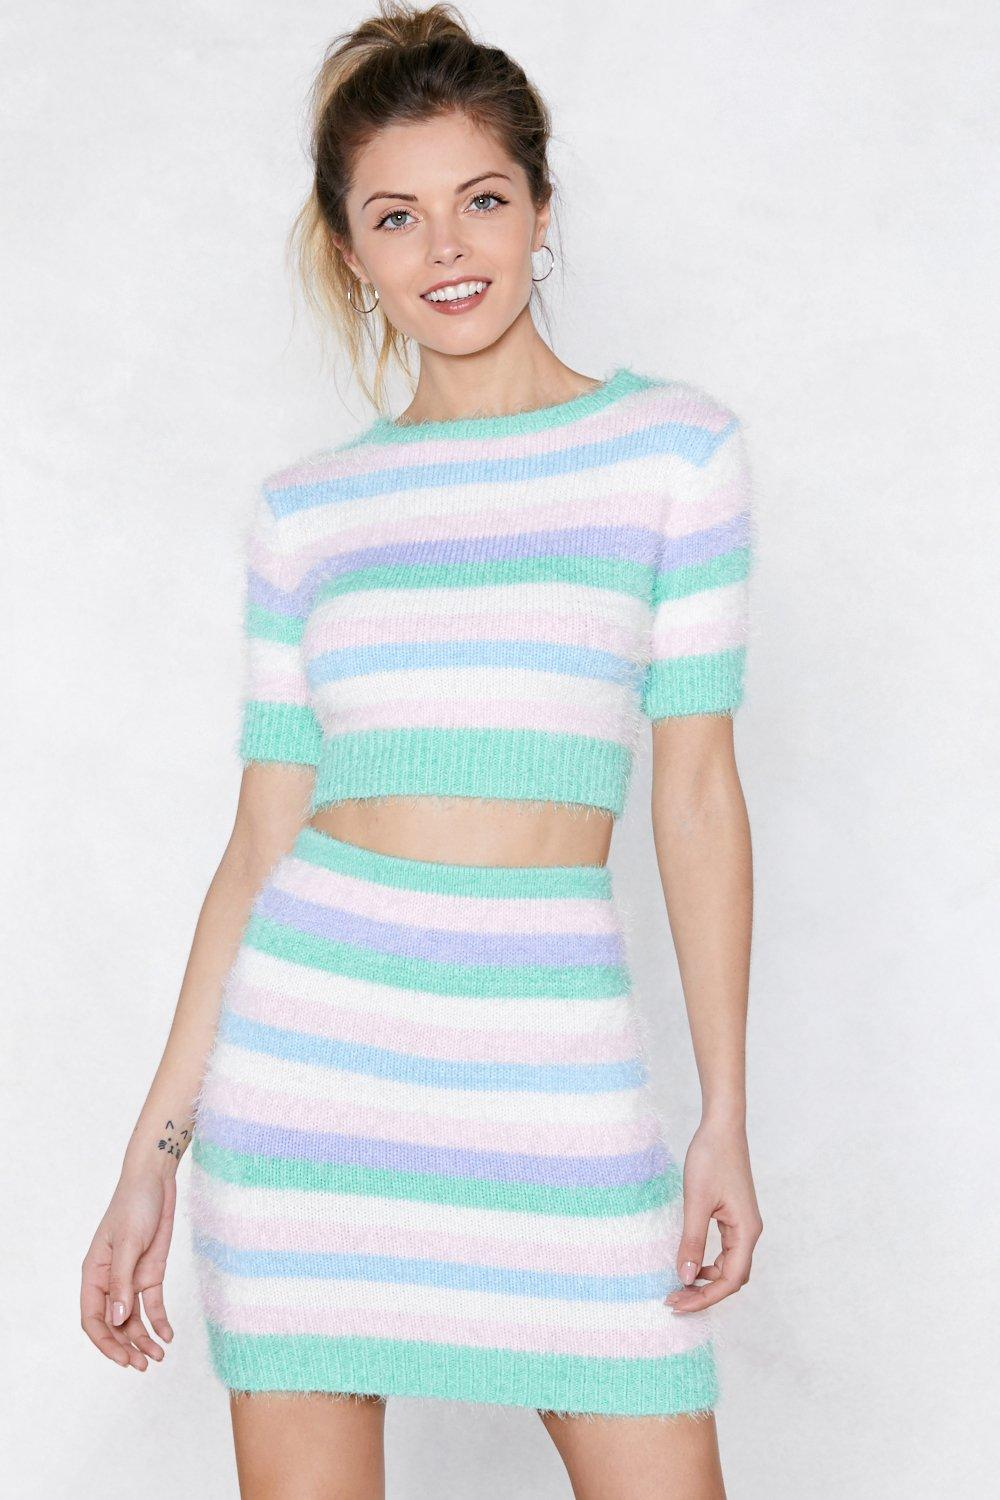 Get On Knit Crop Top And Skirt Set Shop Clothes At Nasty Gal